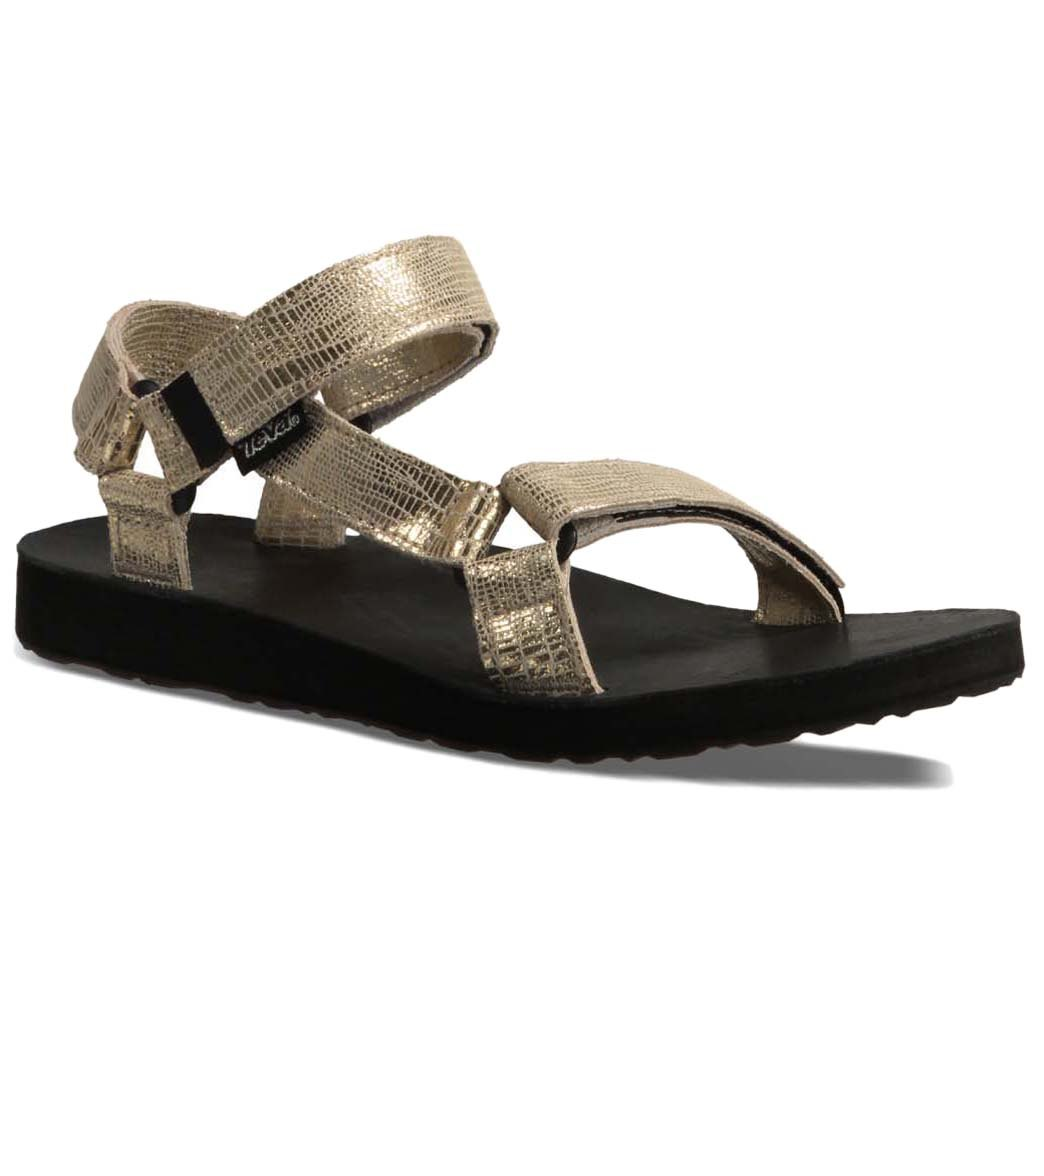 8547d7bca777 ... Teva Women s Original Universal Leather Metallic Sandal. Share